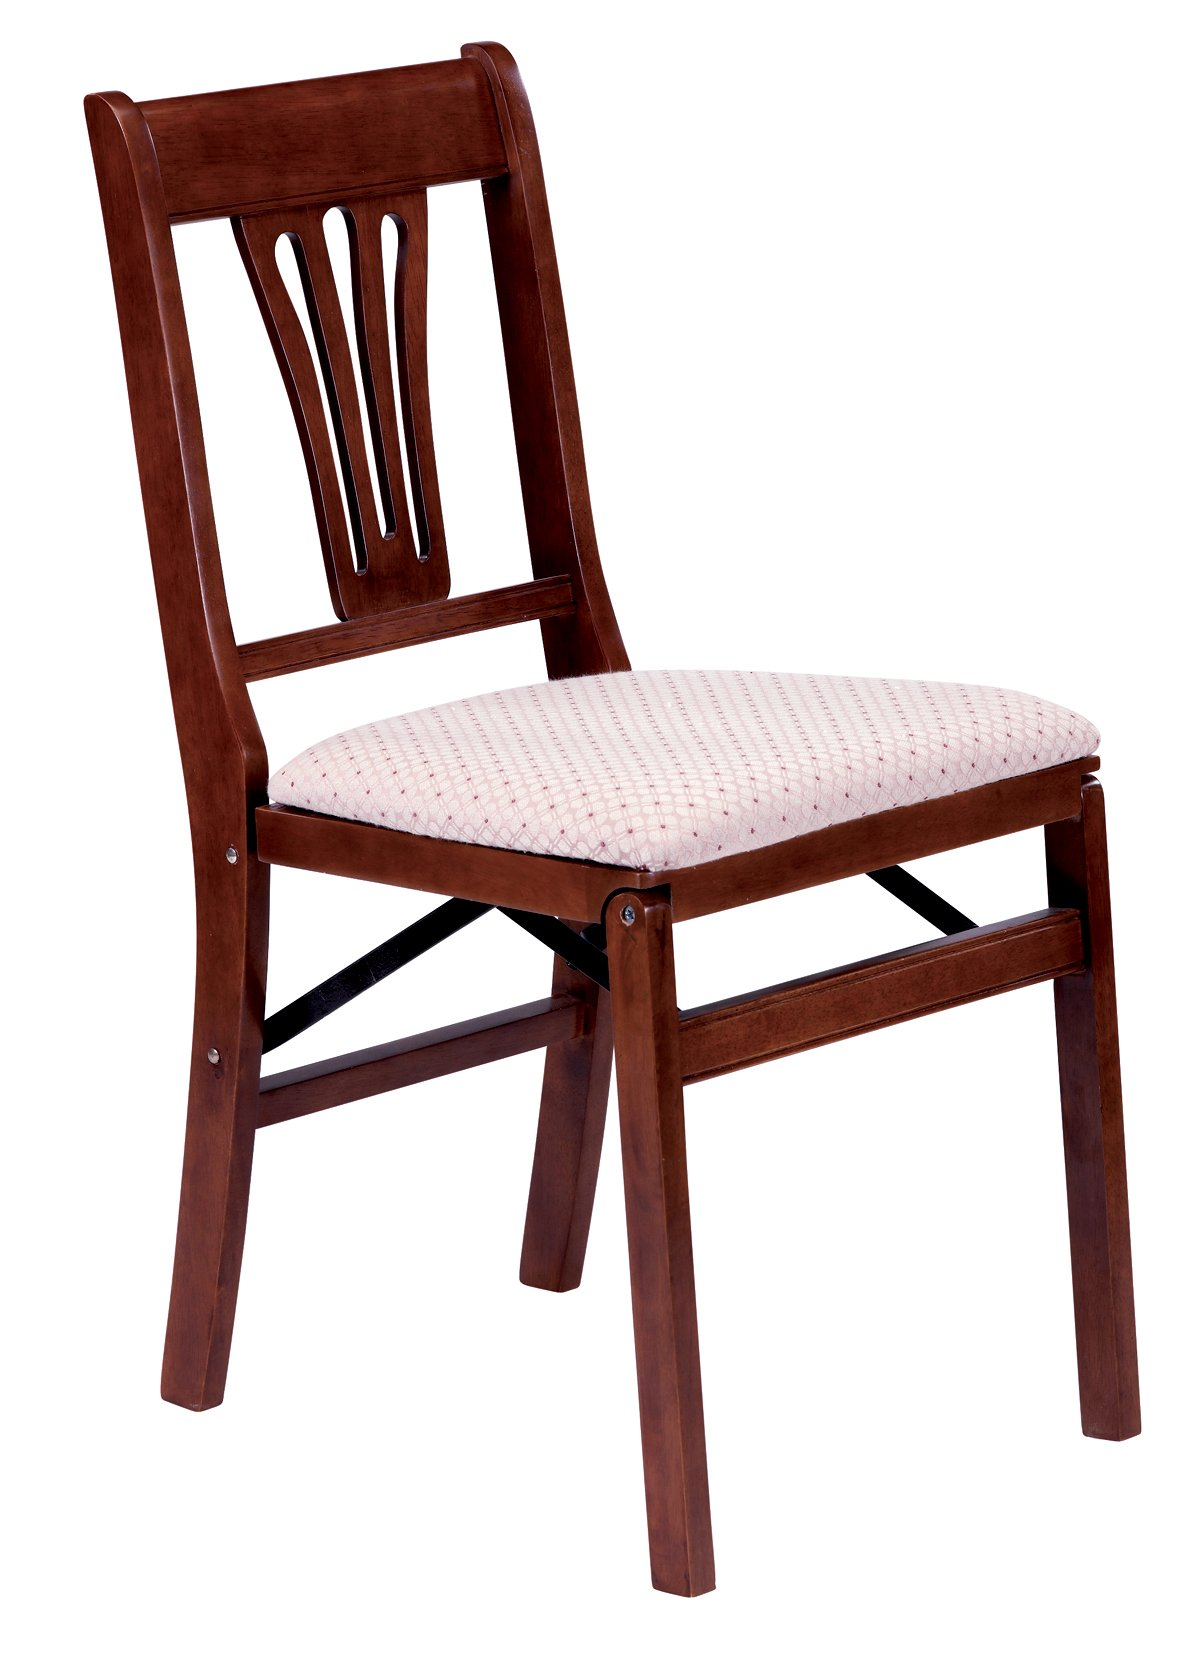 Stakmore Urn Back Folding Chair Finish, Set of 2, Cherry by MECO